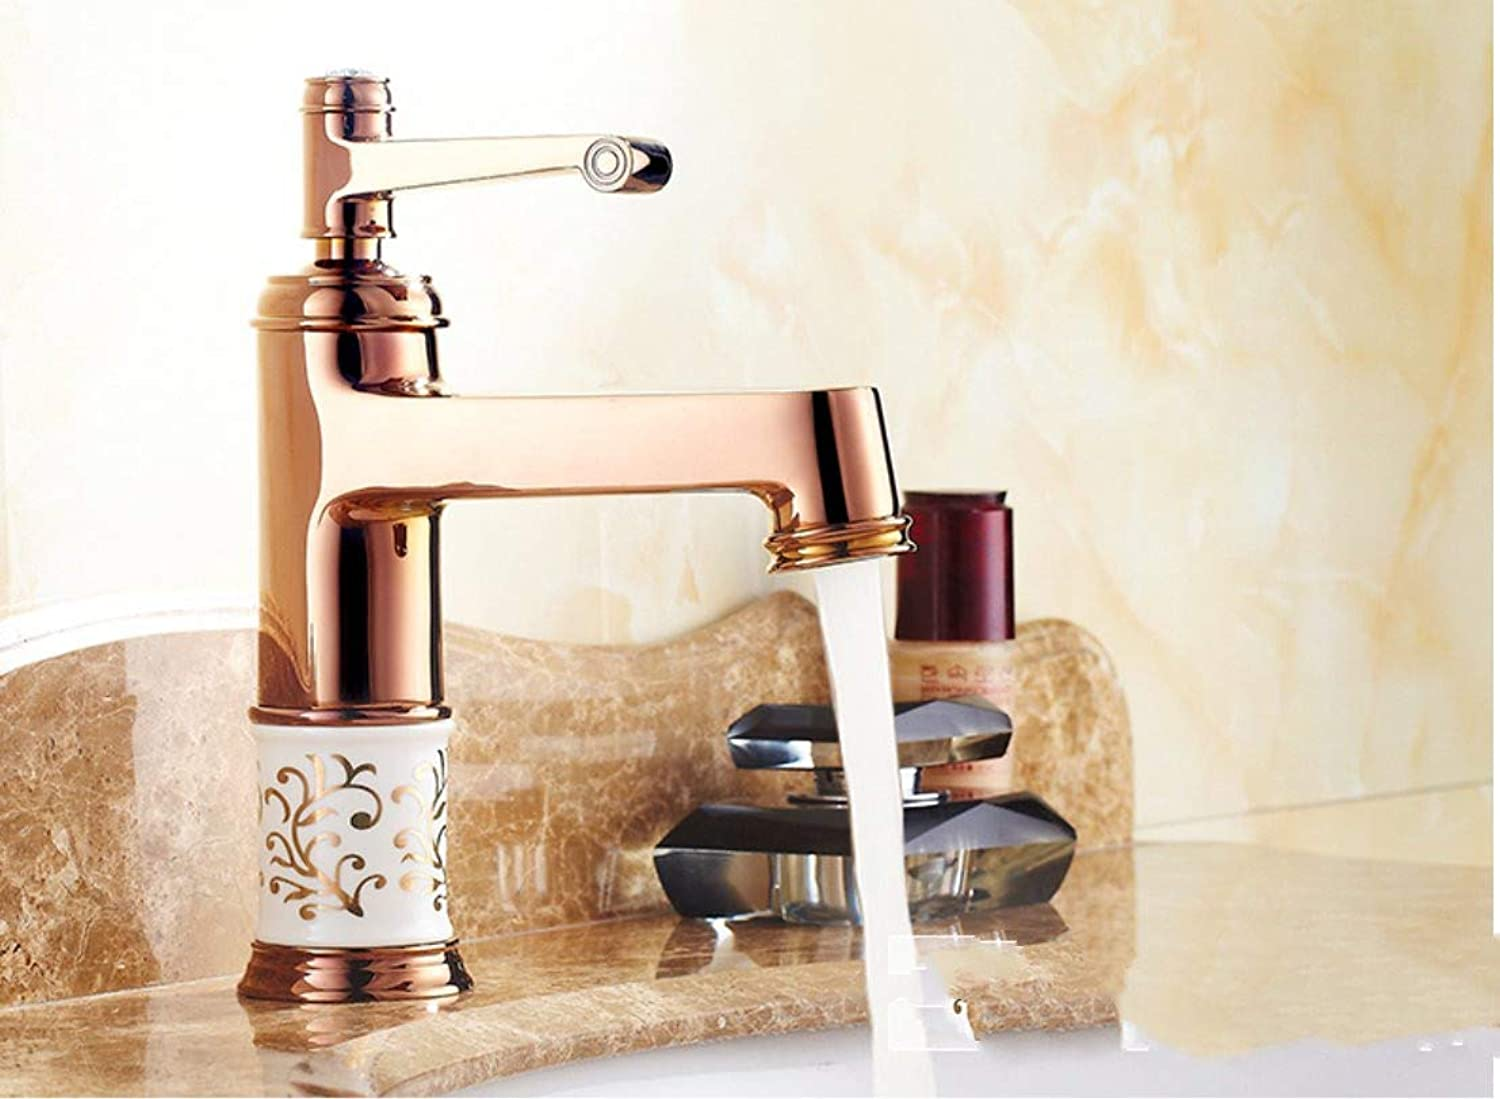 redOOY Bathroom Sink Taps European Copper Basin Faucet bluee And White Porcelain gold Antique pink gold Faucet Hot And Cold Water Faucet European bluee And White Porcelain Faucet pink gold